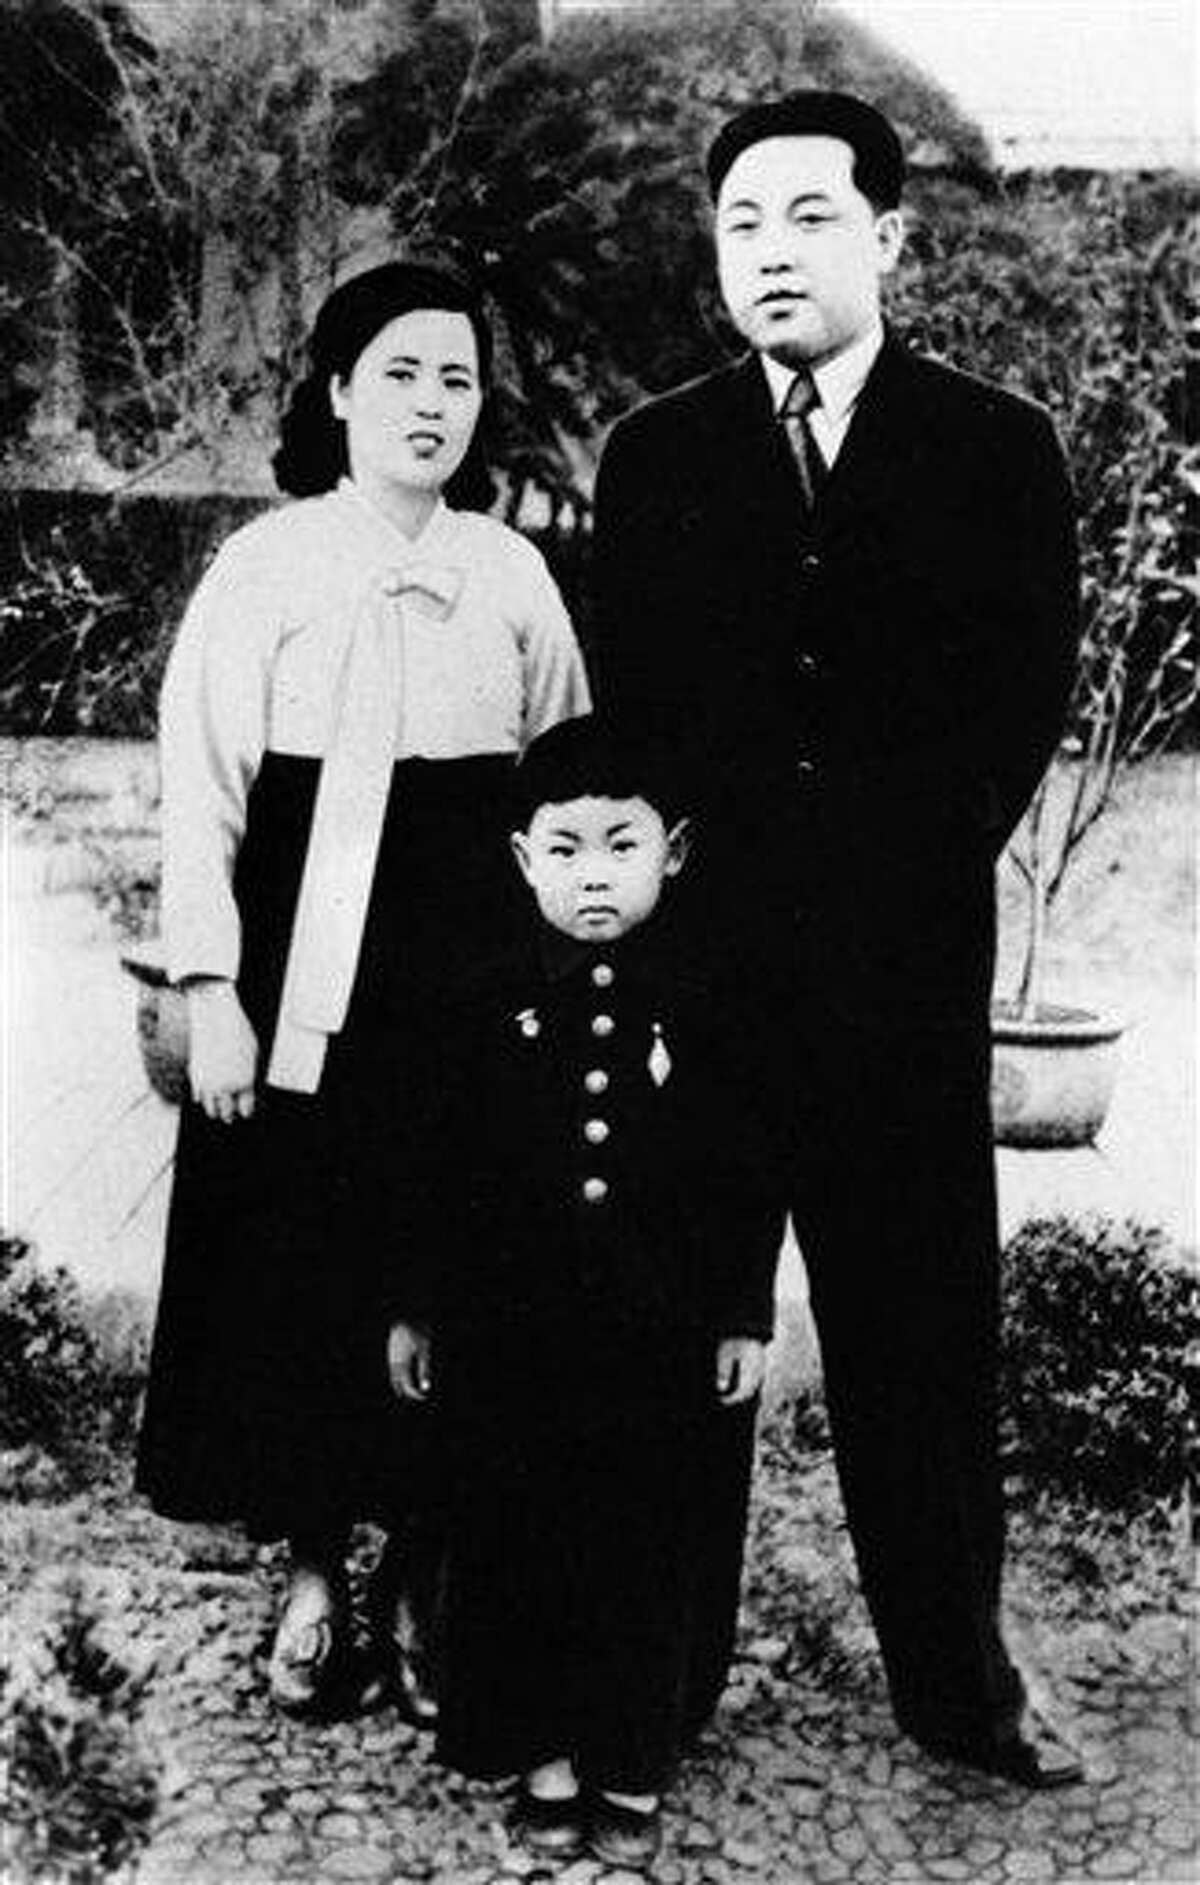 In this undated photo from North Korea's official Korean Central News Agency, distributed by Korea News Service, Kim Jong II, center, takes part in a souvenir picture during his childhood with his parents, North Korean leader Kim Jong Suk, right, and leader Kim Il Sung. North Korea's news agency reported today that Kim Jong Il had died on Saturday, Dec. 17 after having a heart attack on a train. He was 69. Associated Press